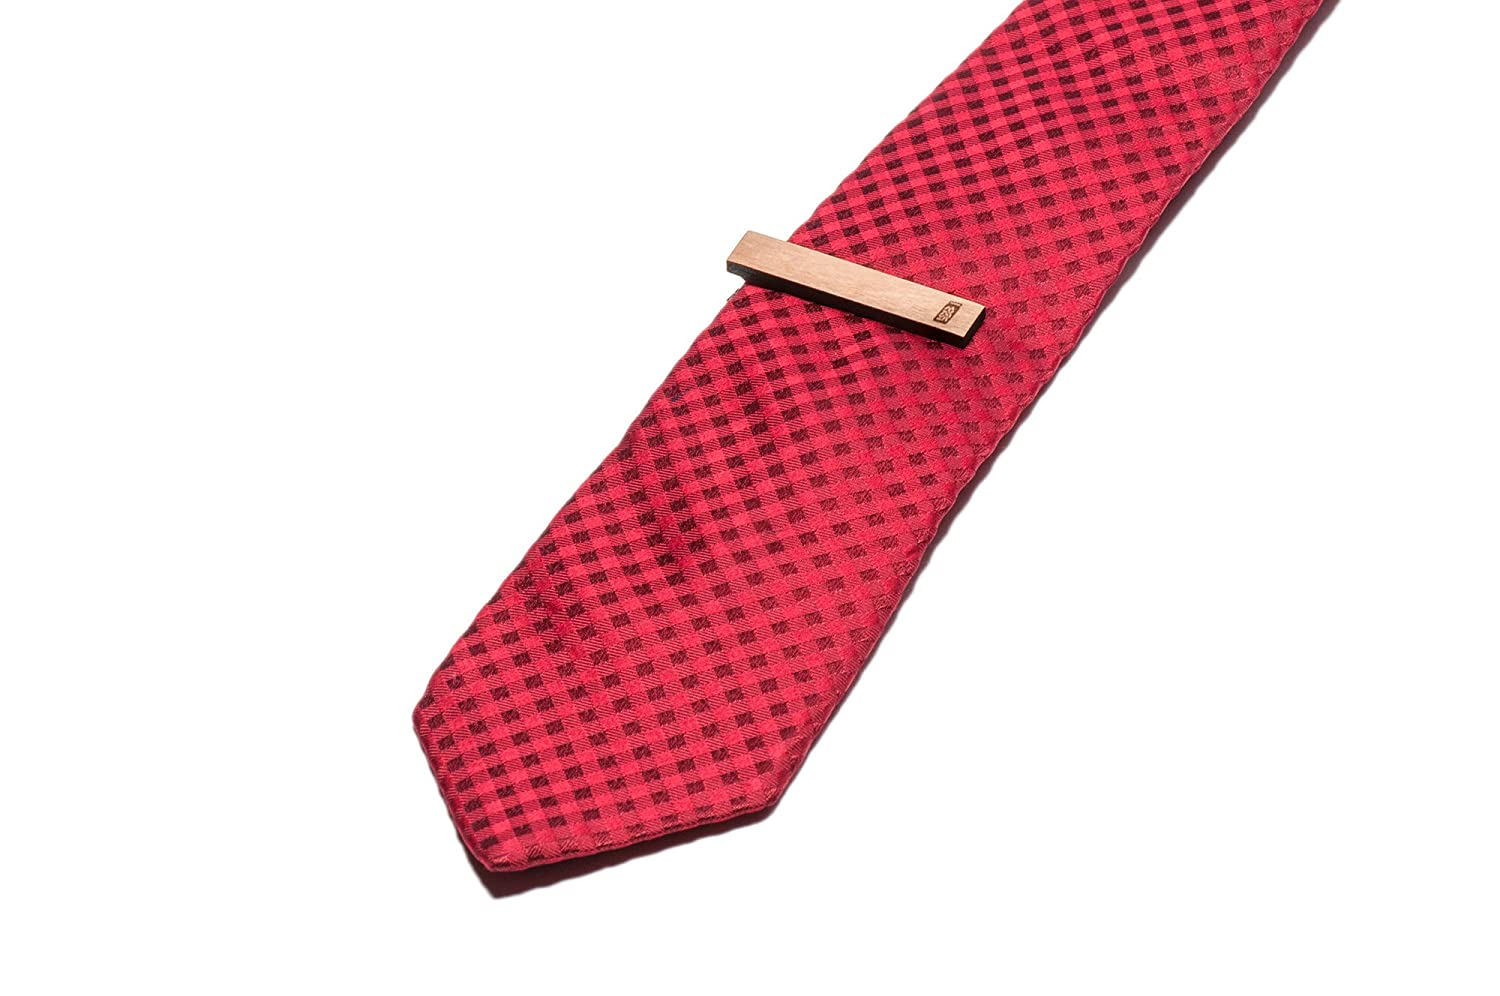 Wooden Accessories Company Wooden Tie Clips with Laser Engraved Medications Design Cherry Wood Tie Bar Engraved in The USA